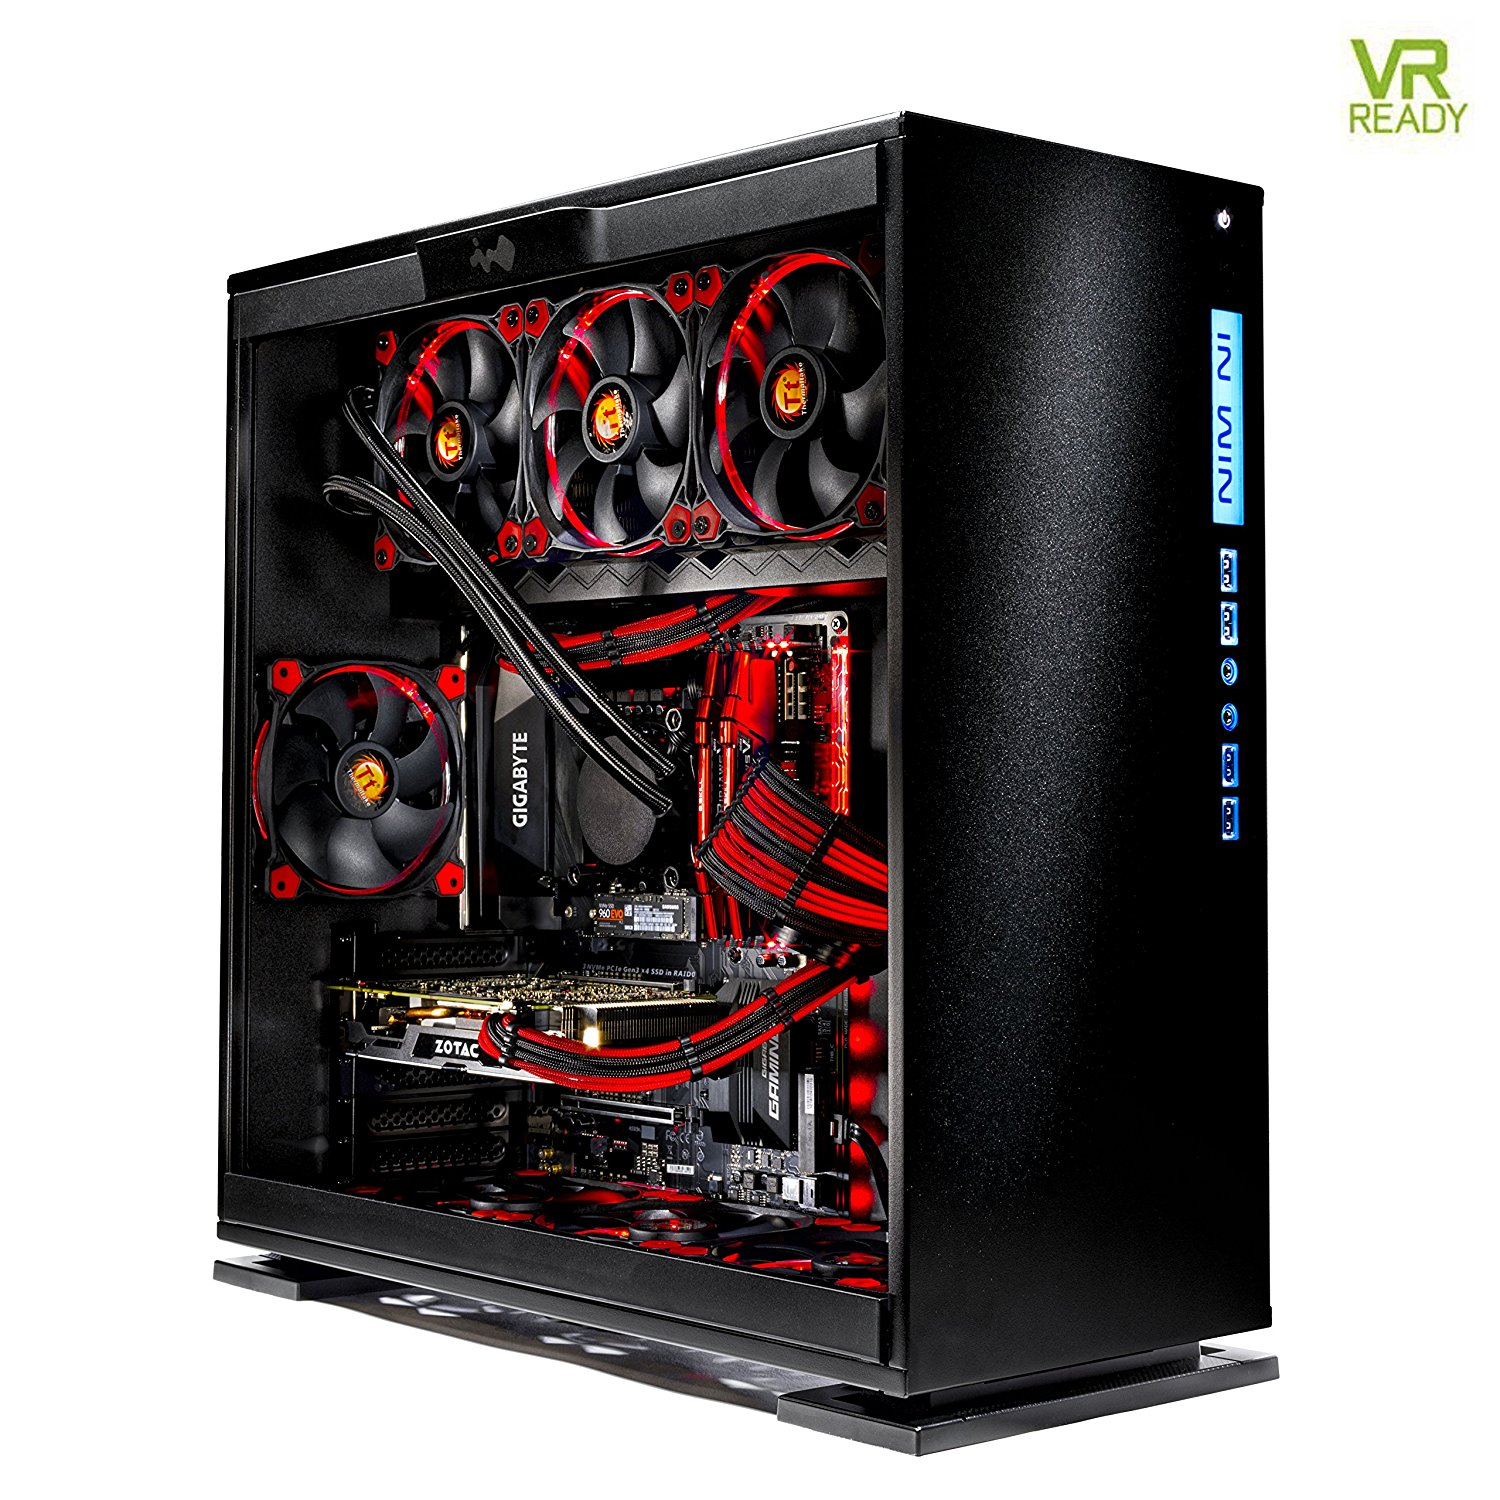 SkyTech Legacy - Gaming Computer PC Desktop - i7-7700K 4.2Ghz, 500GB Samsung 960 Evo NVMe SSD, GTX 1070 8GB, 360mm Liquid Cool, 2TB HDD, 16GB DDR4, Z270 Motherboard, Windows 10 Pro 64-bit